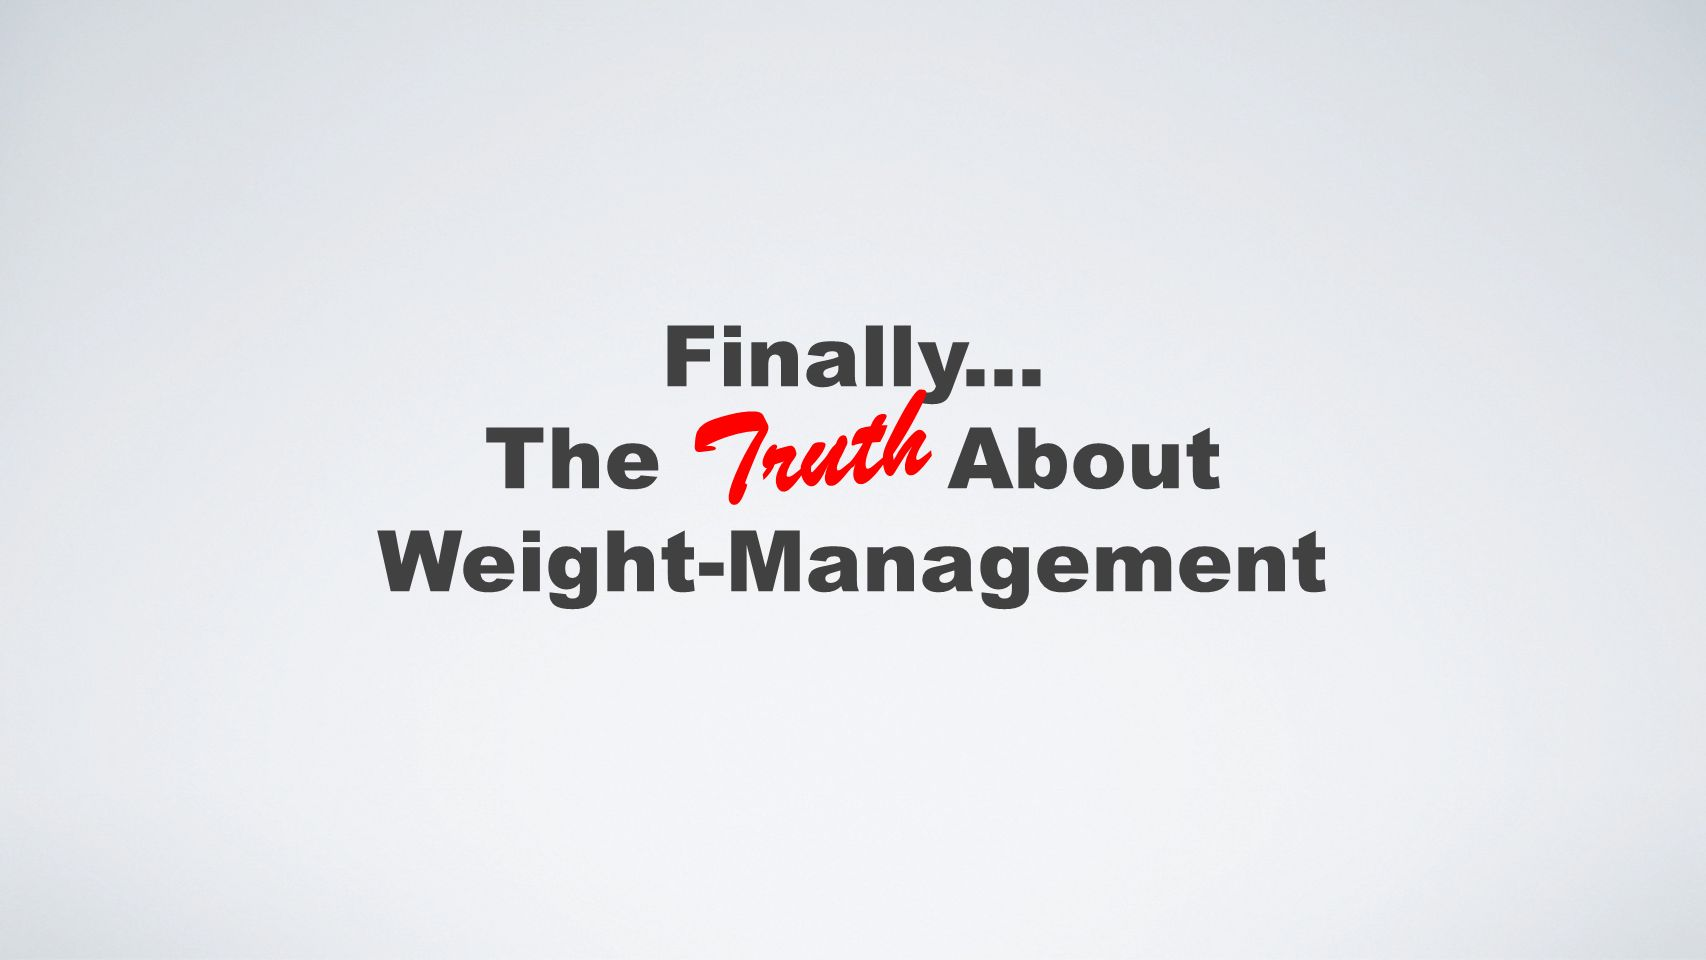 Finally... The About Weight-Management Truth